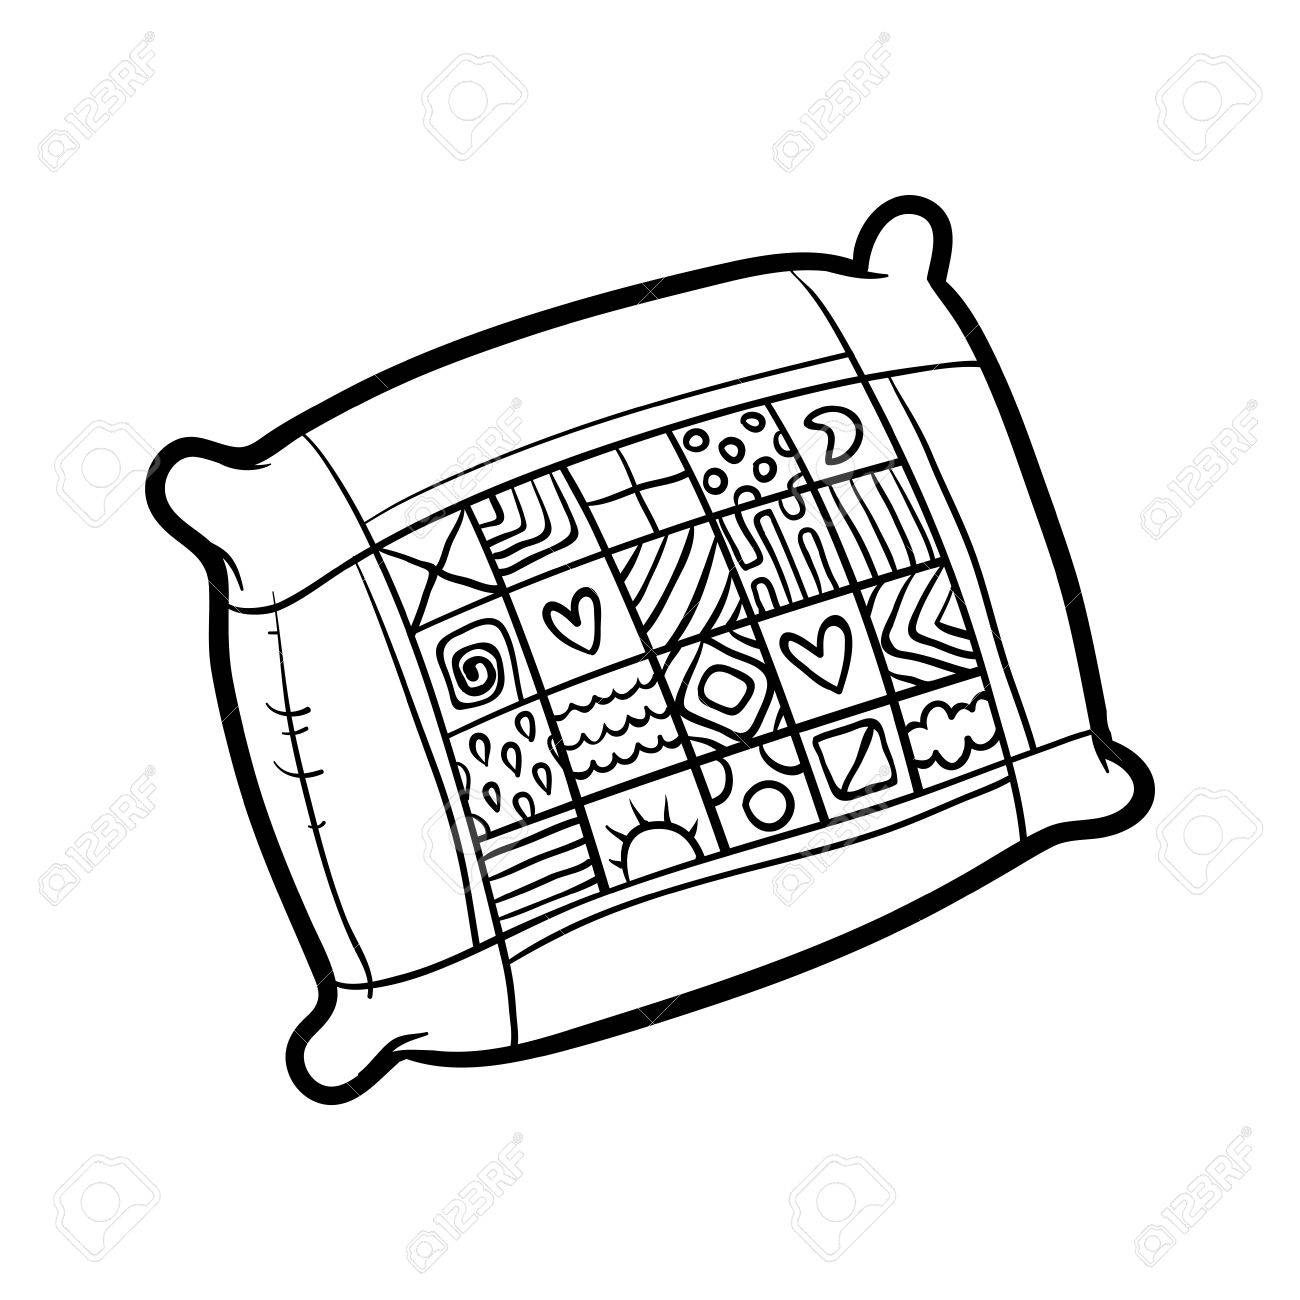 Coloring Book For Children, Pillow Royalty Free Cliparts, Vectors ... for Pillow Clipart Black And White  570bof